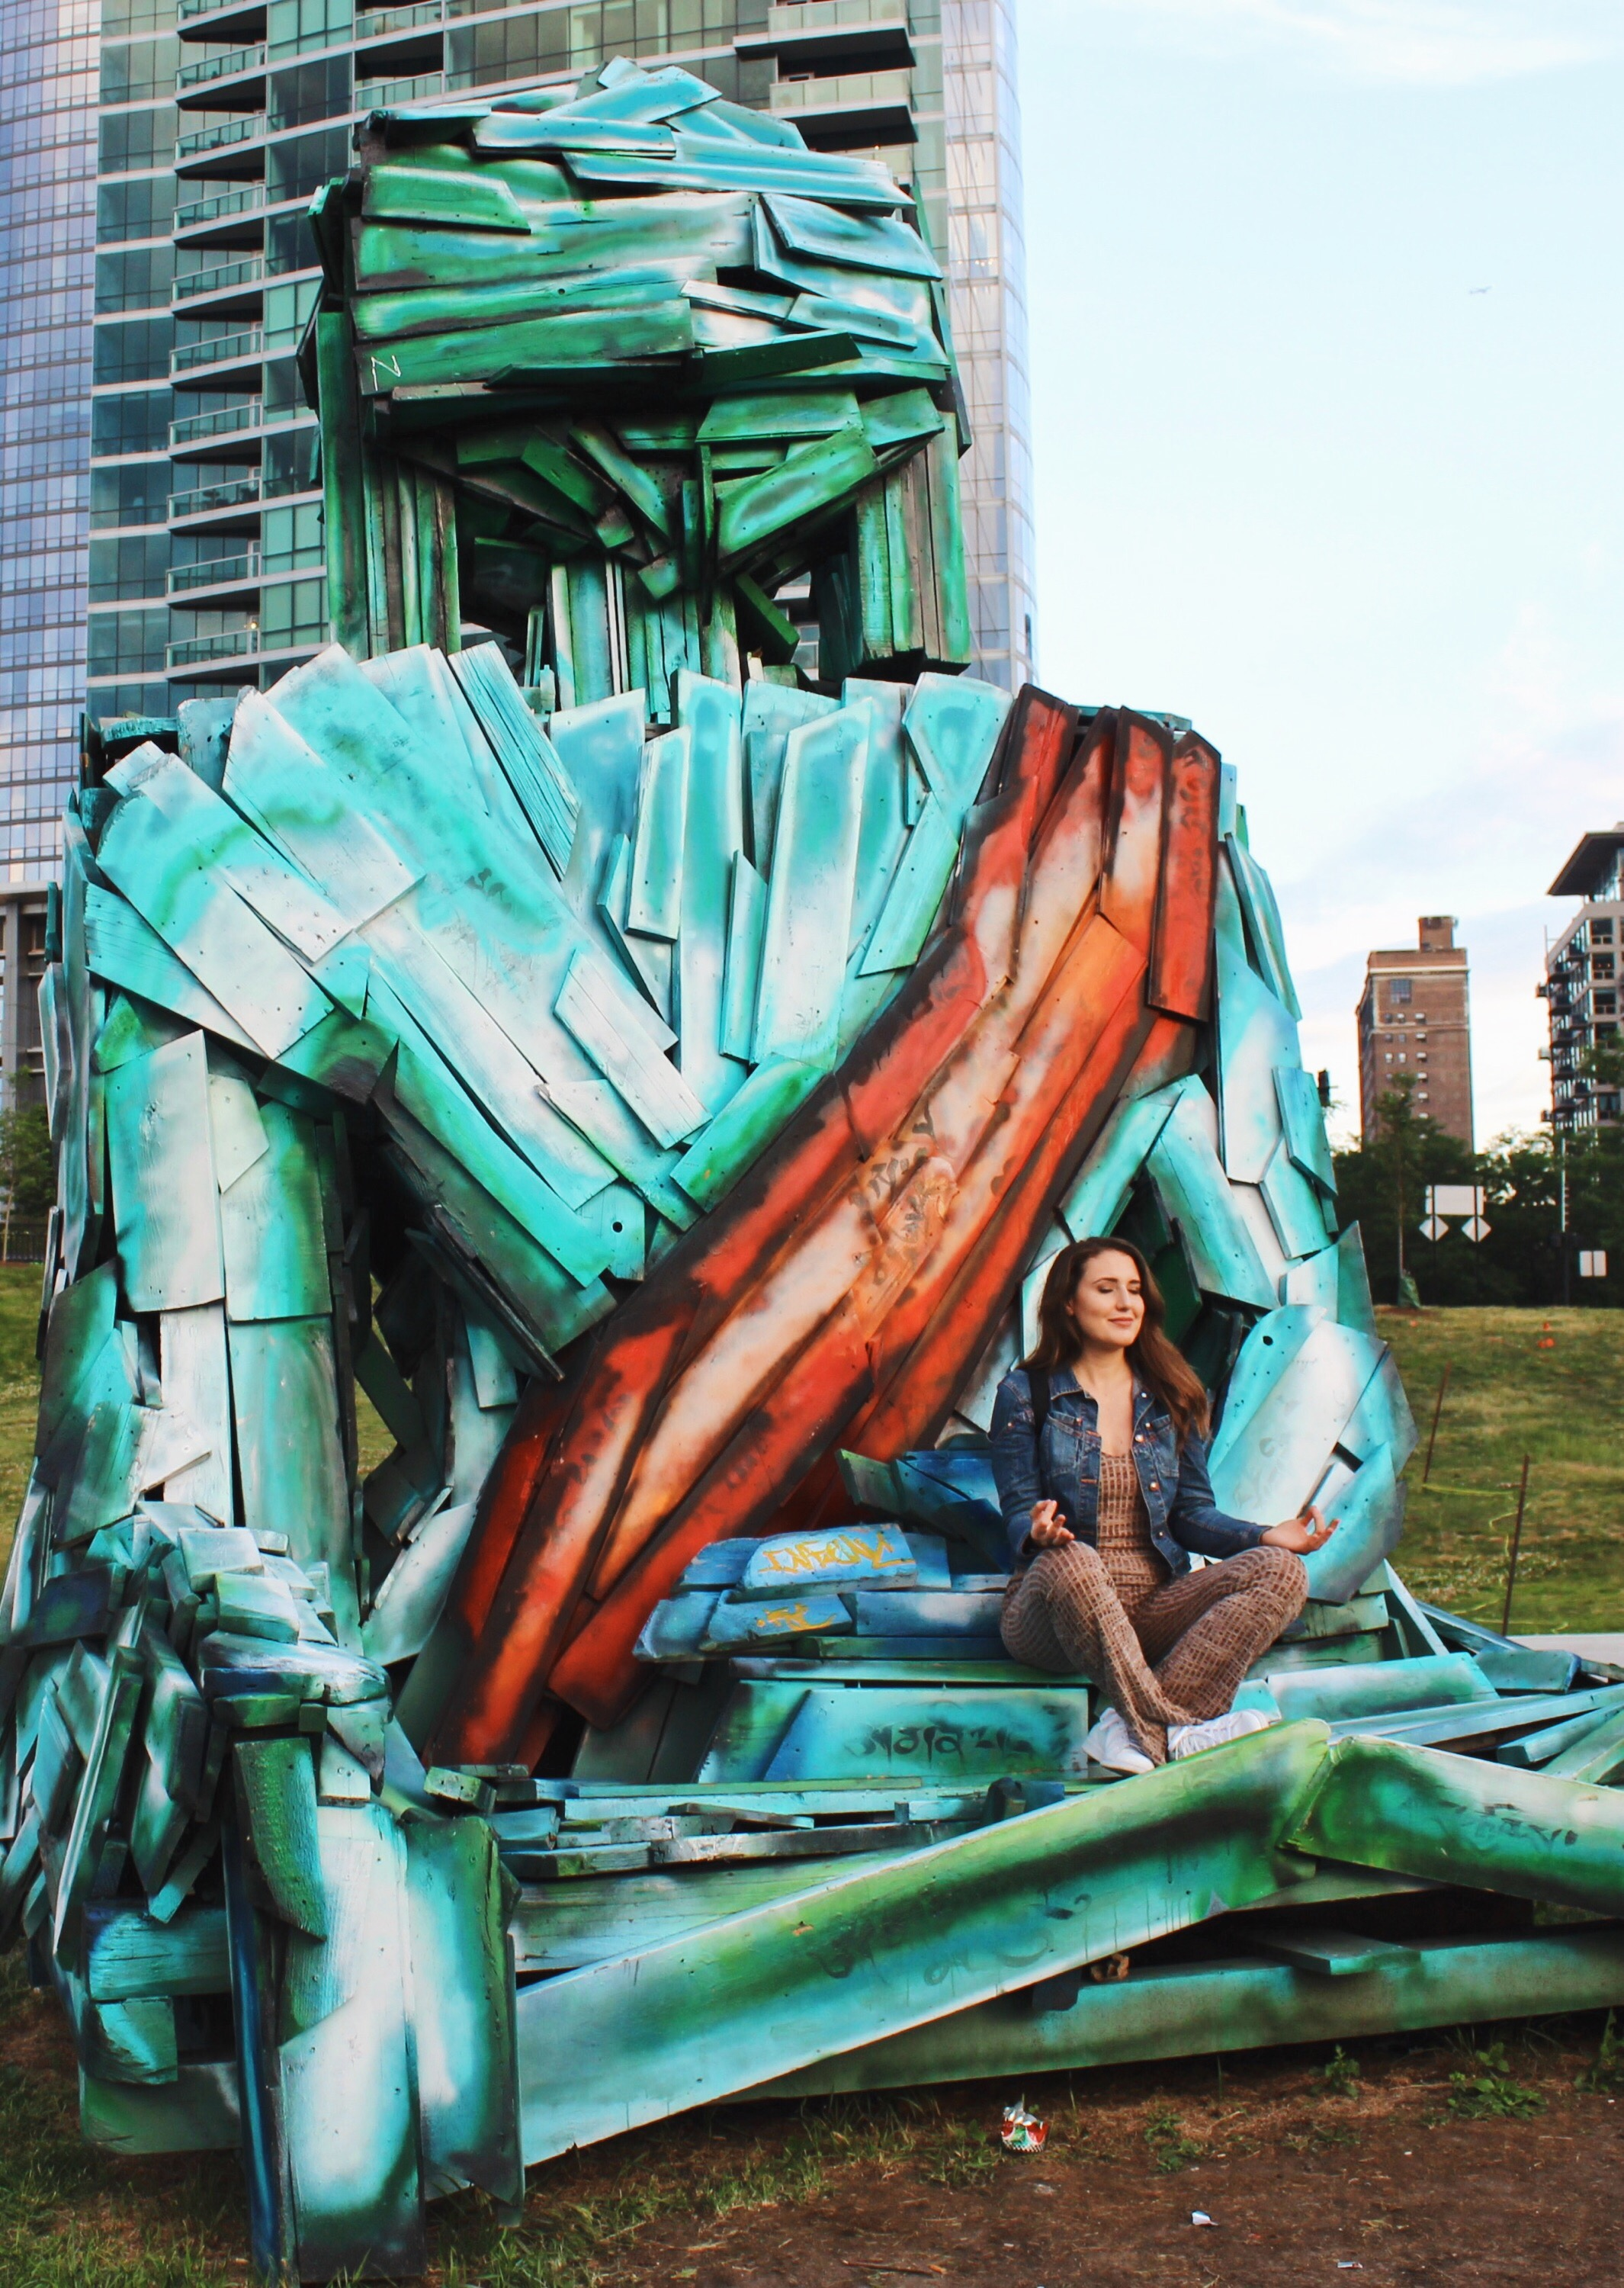 """Grant Park's latest edition is """"Urban Buddha,"""" a 15-foot-tall effigy meant to send a message about global deforestation designed by Tibetan artist Tashi Norbu."""